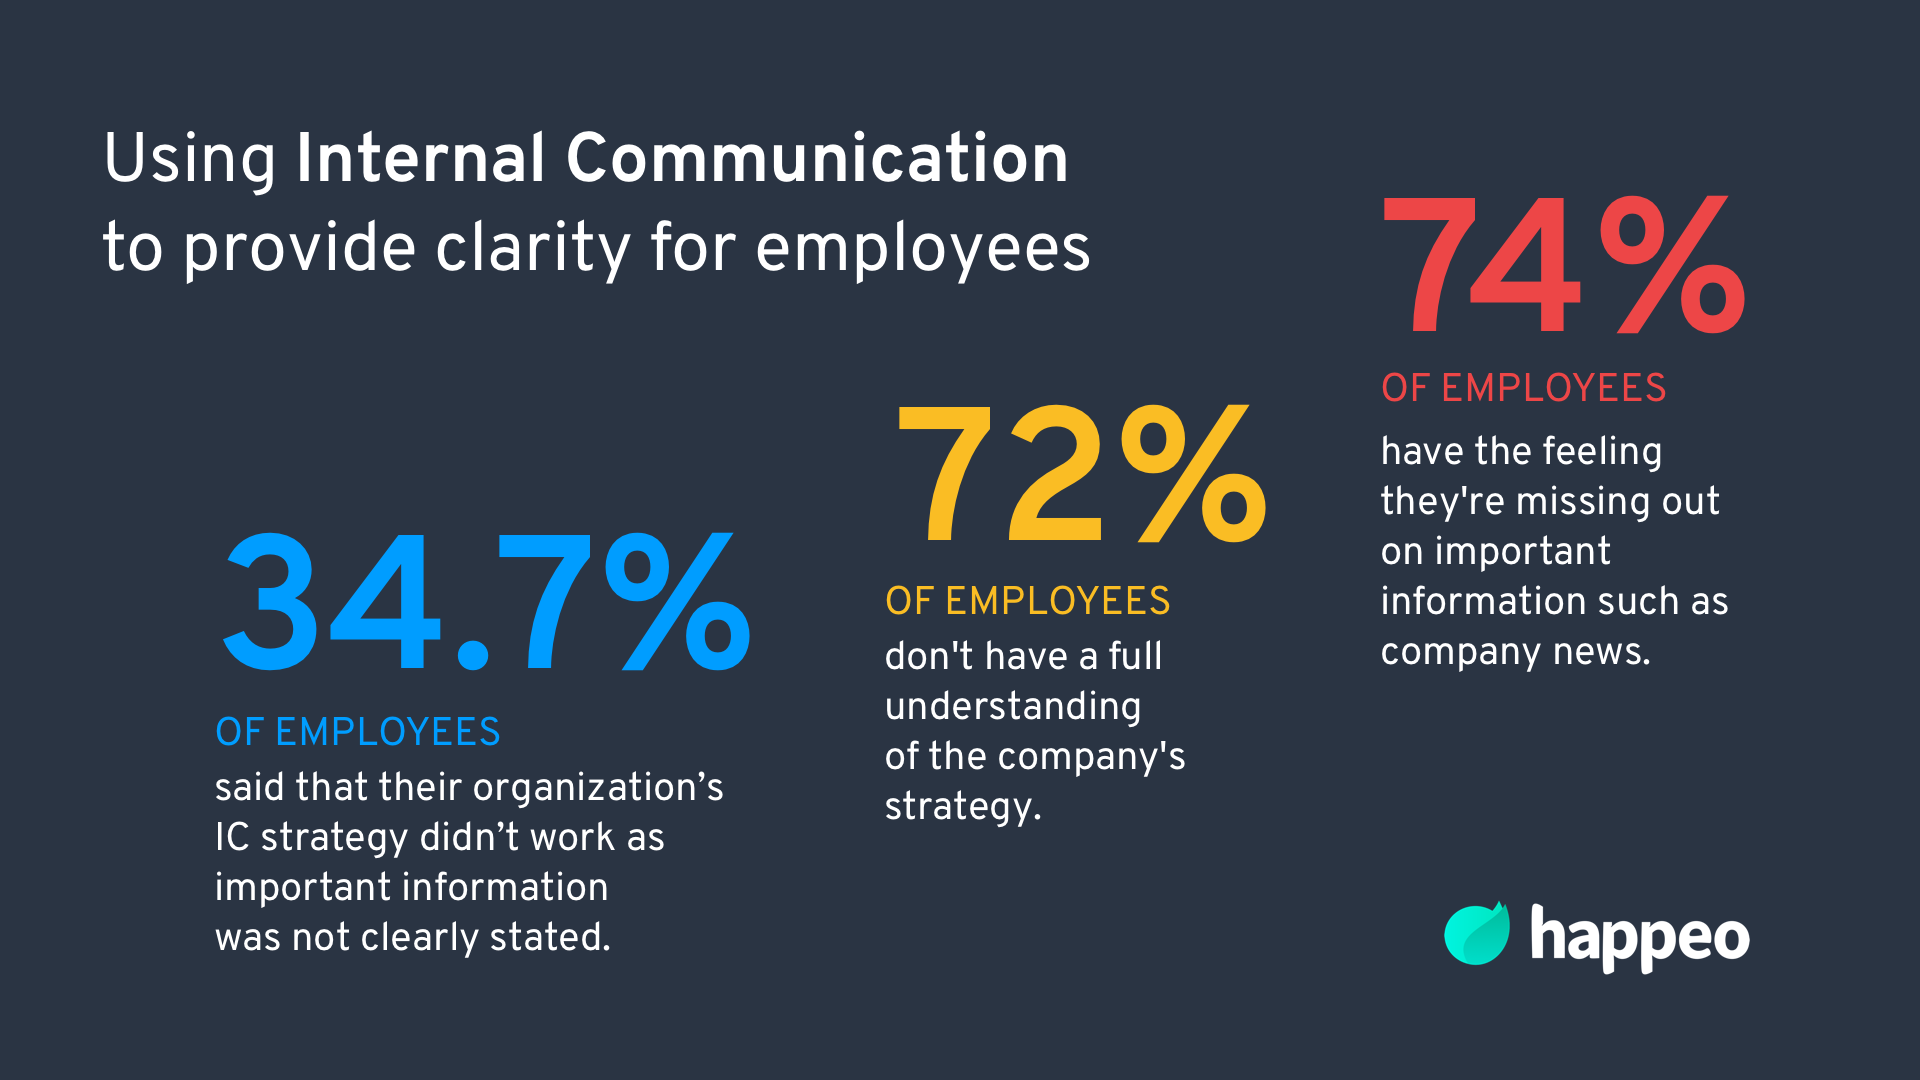 Internal communication for clarity at work